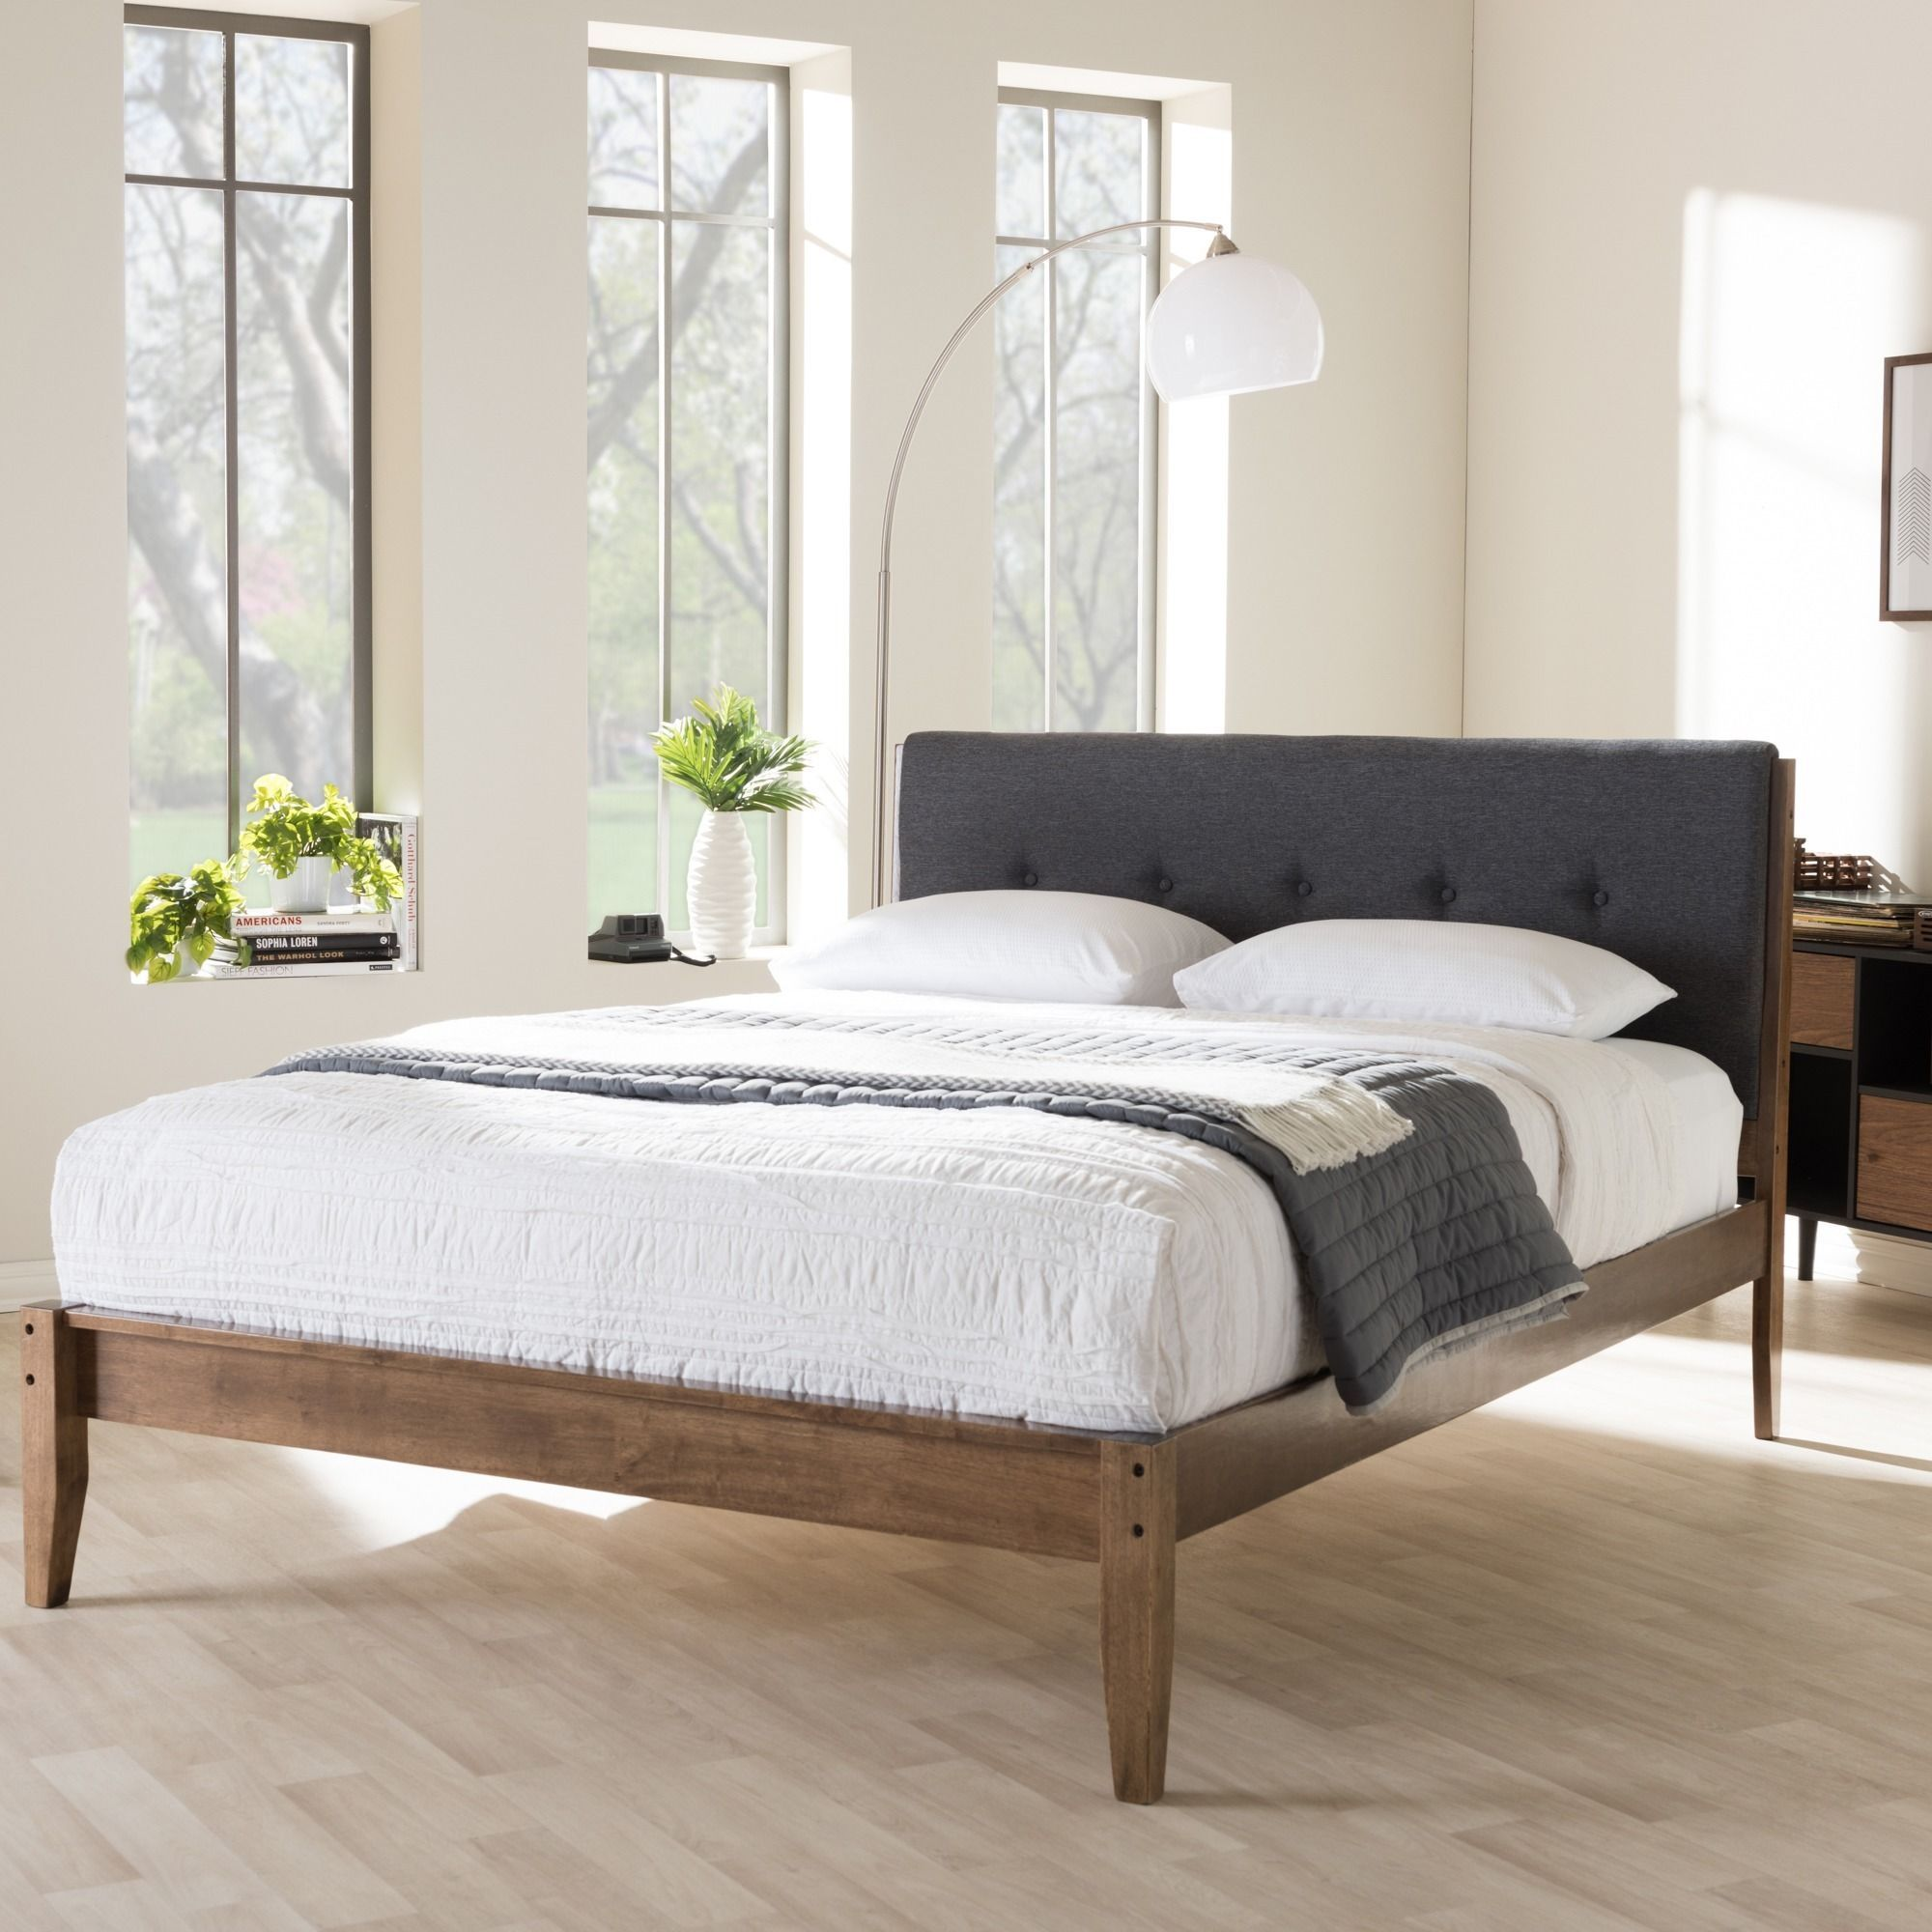 Inspired By Mid Century Modern Scandinavian Design The Kyros Upholstered Platform Bed Provide Additional Option For Your Bedroom Setting